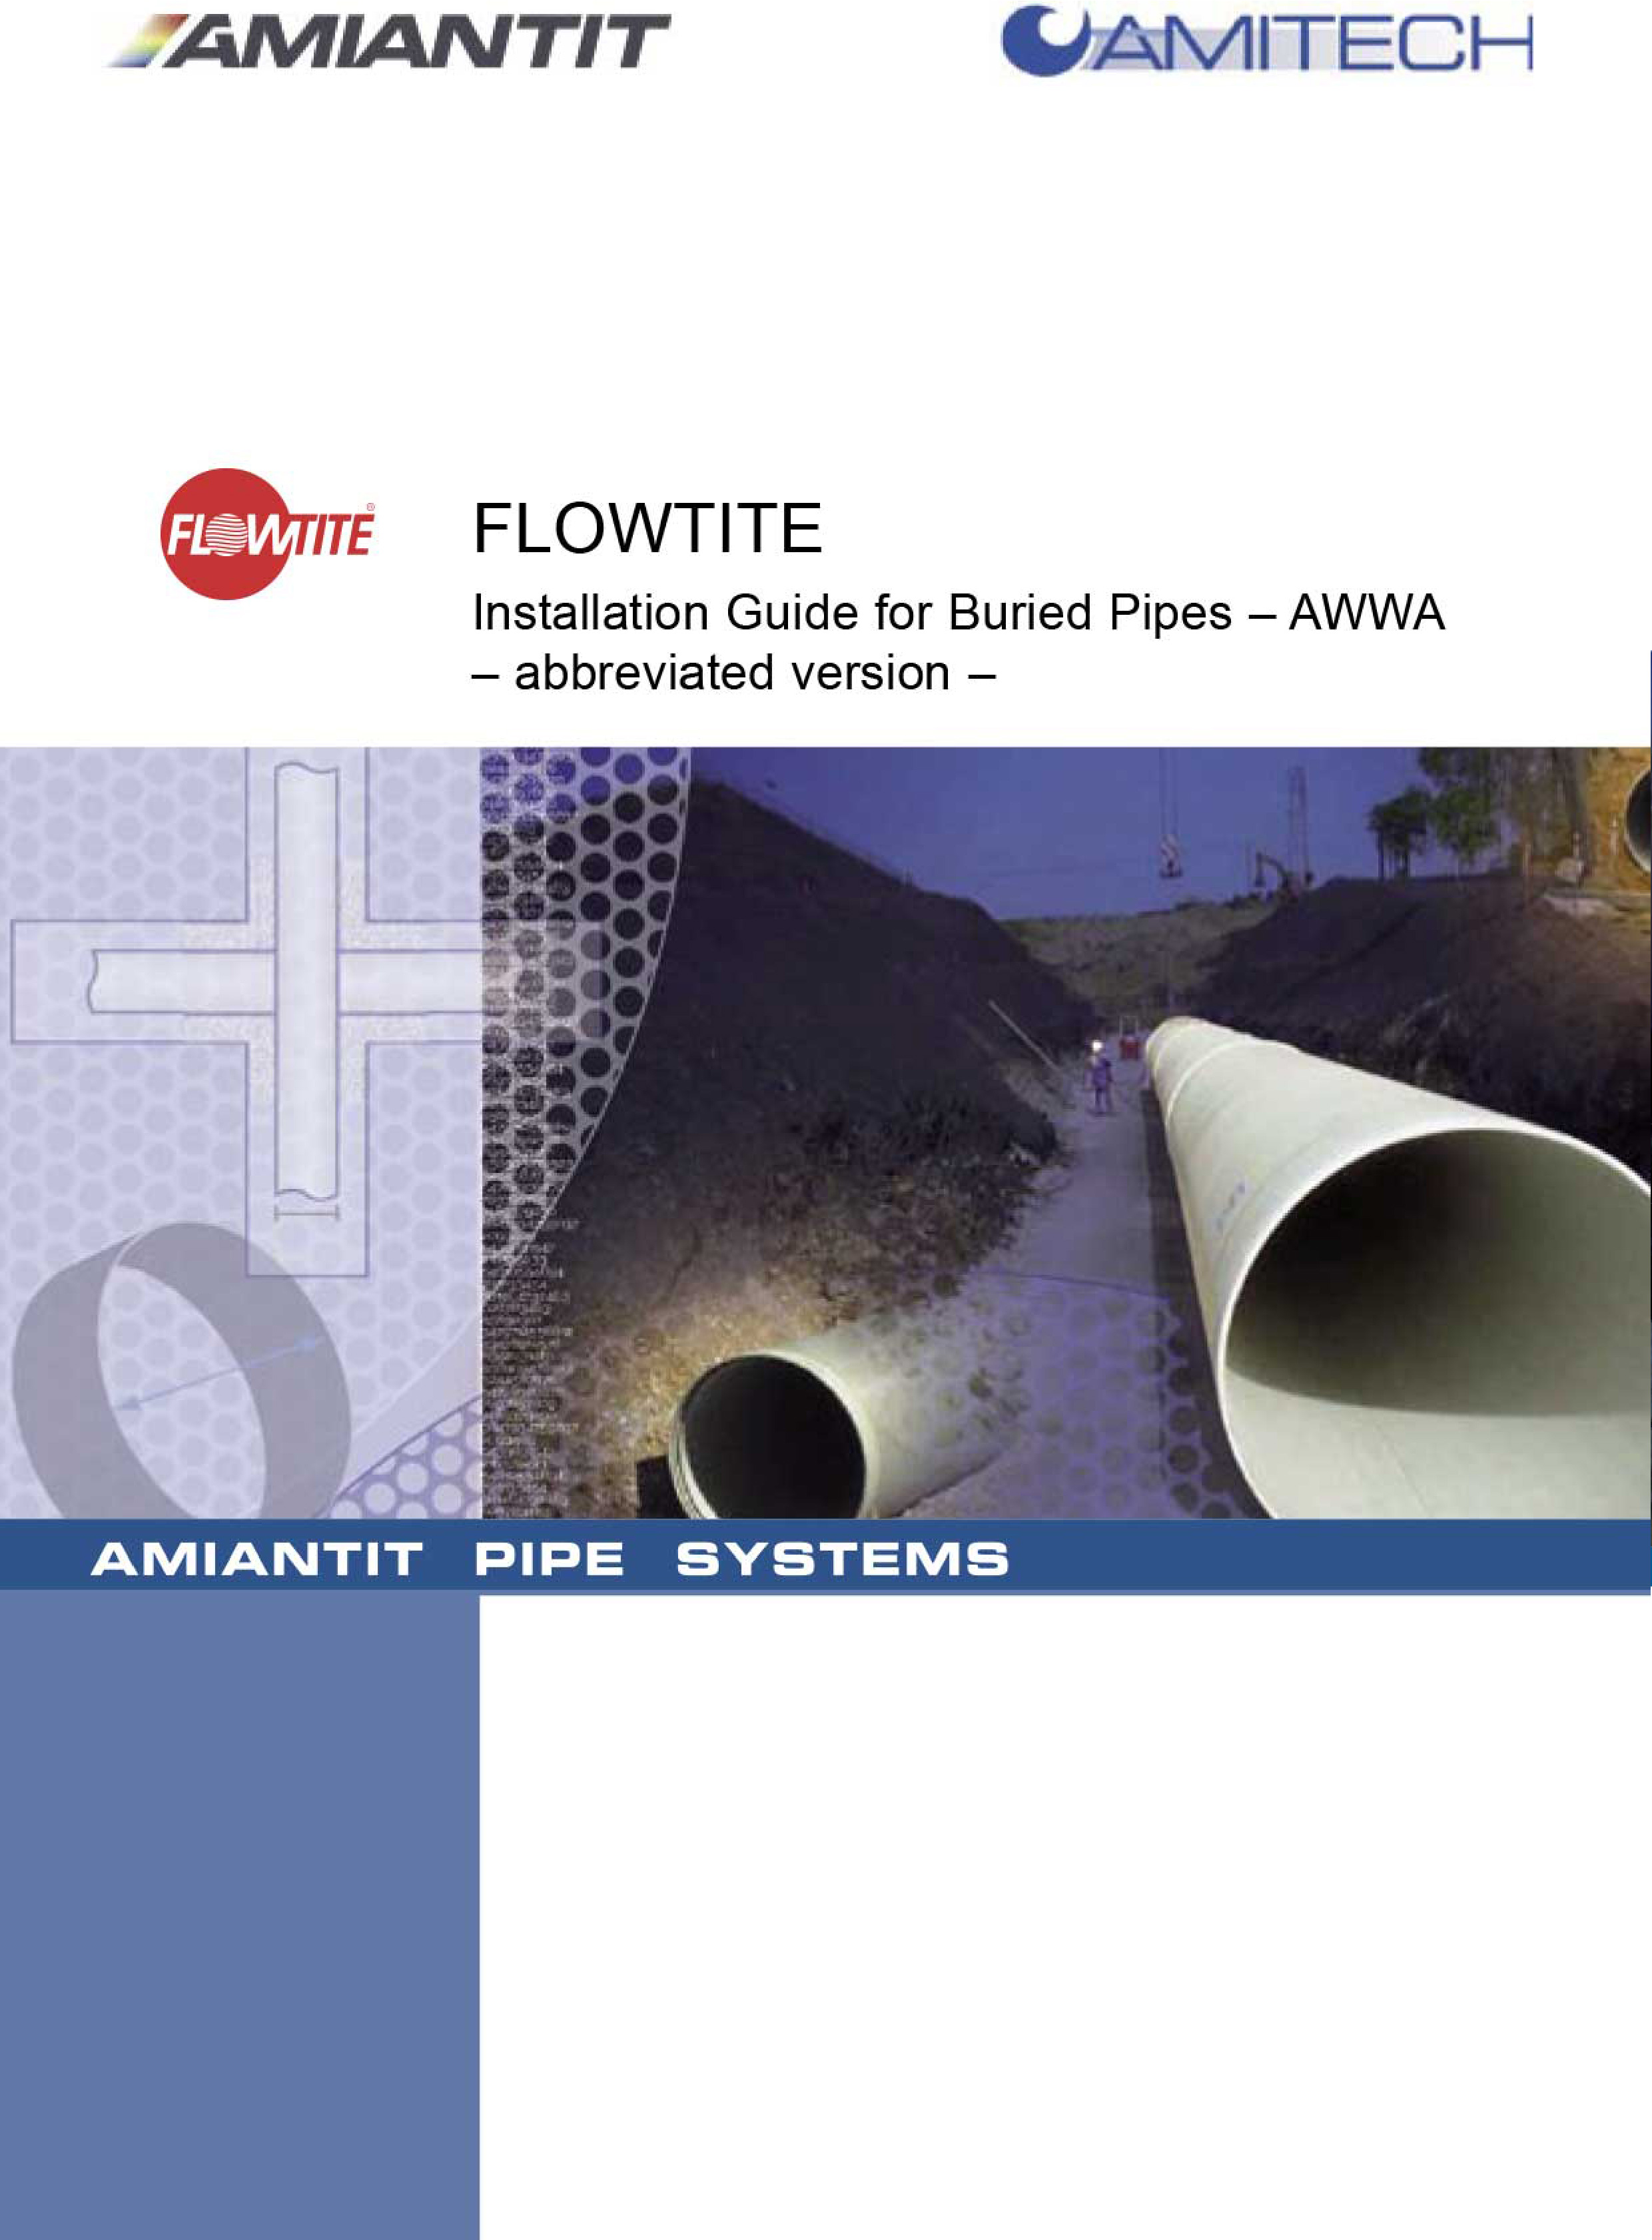 Brochures and Catalogs - Amiantit